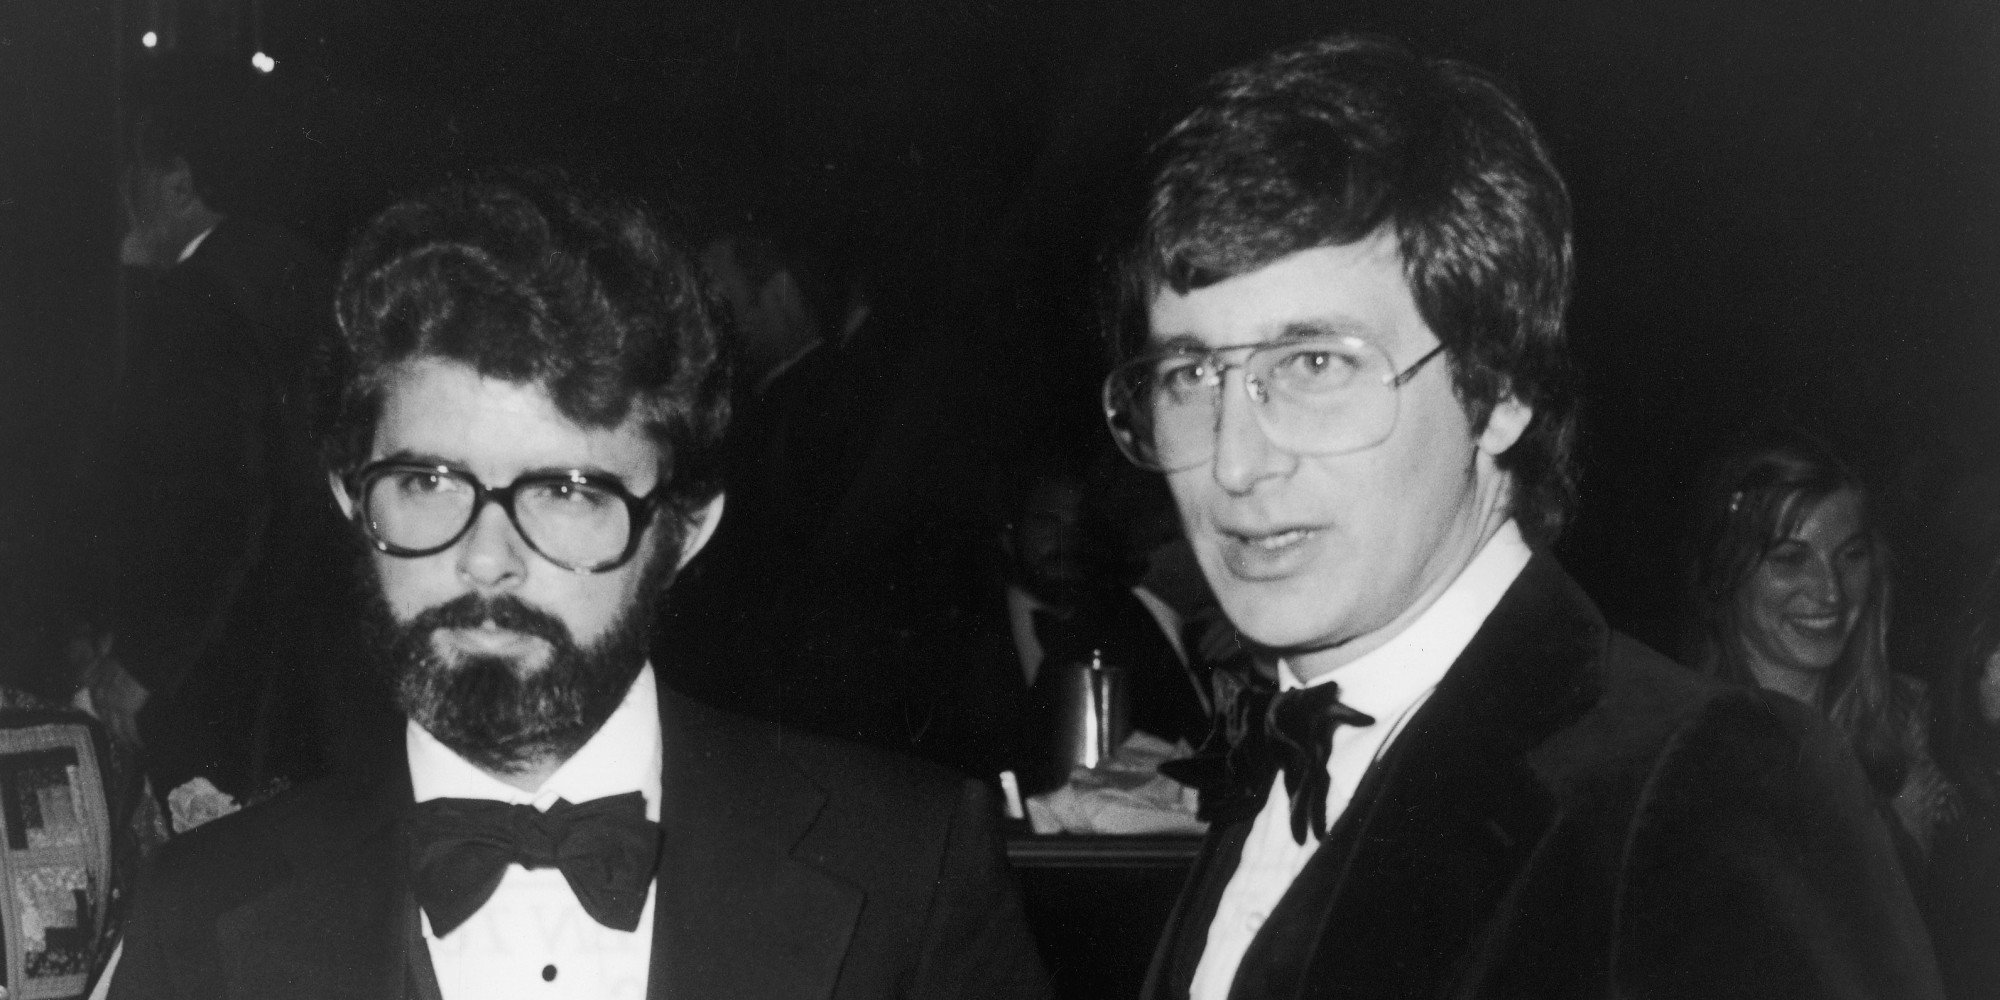 American directors George Lucas (L) and Steven Spielberg hold their Best Director nomination plaques at the Directors Guild of America annual awards dinner held at the Beverly Hilton, Bevery Hills, California, March 11, 1978. Lucas was nominated for his film, 'Star Wars' and Spielberg for his film, 'Close Encounters of The Third Kind,' though neither won. Photo by Frank Edwards/Fotos International/Getty Images)